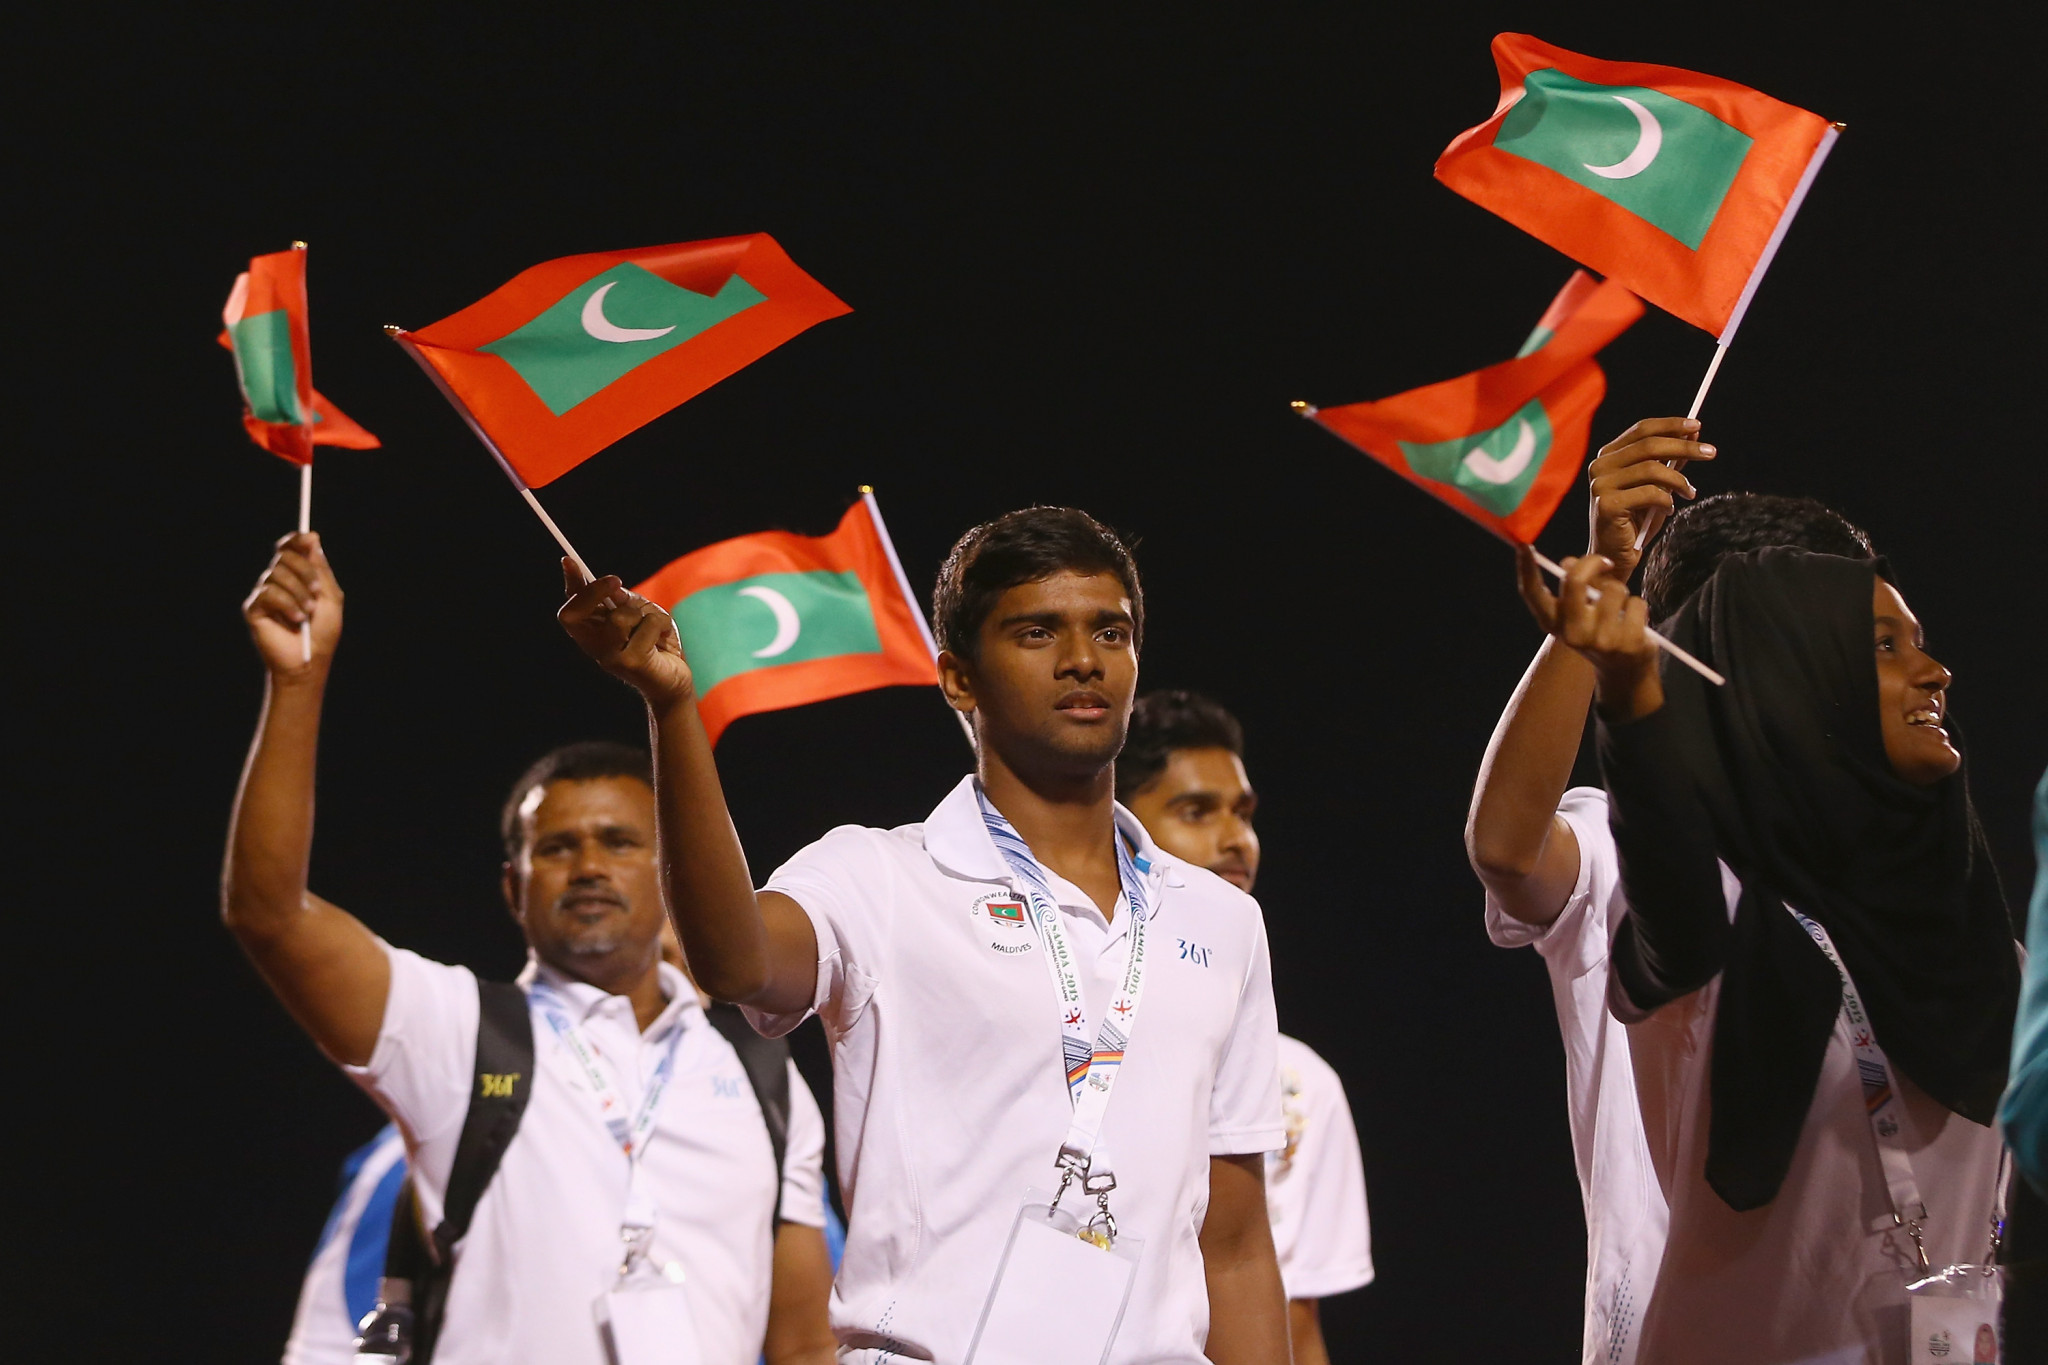 Maldives readmitted as member of Commonwealth Games Federation